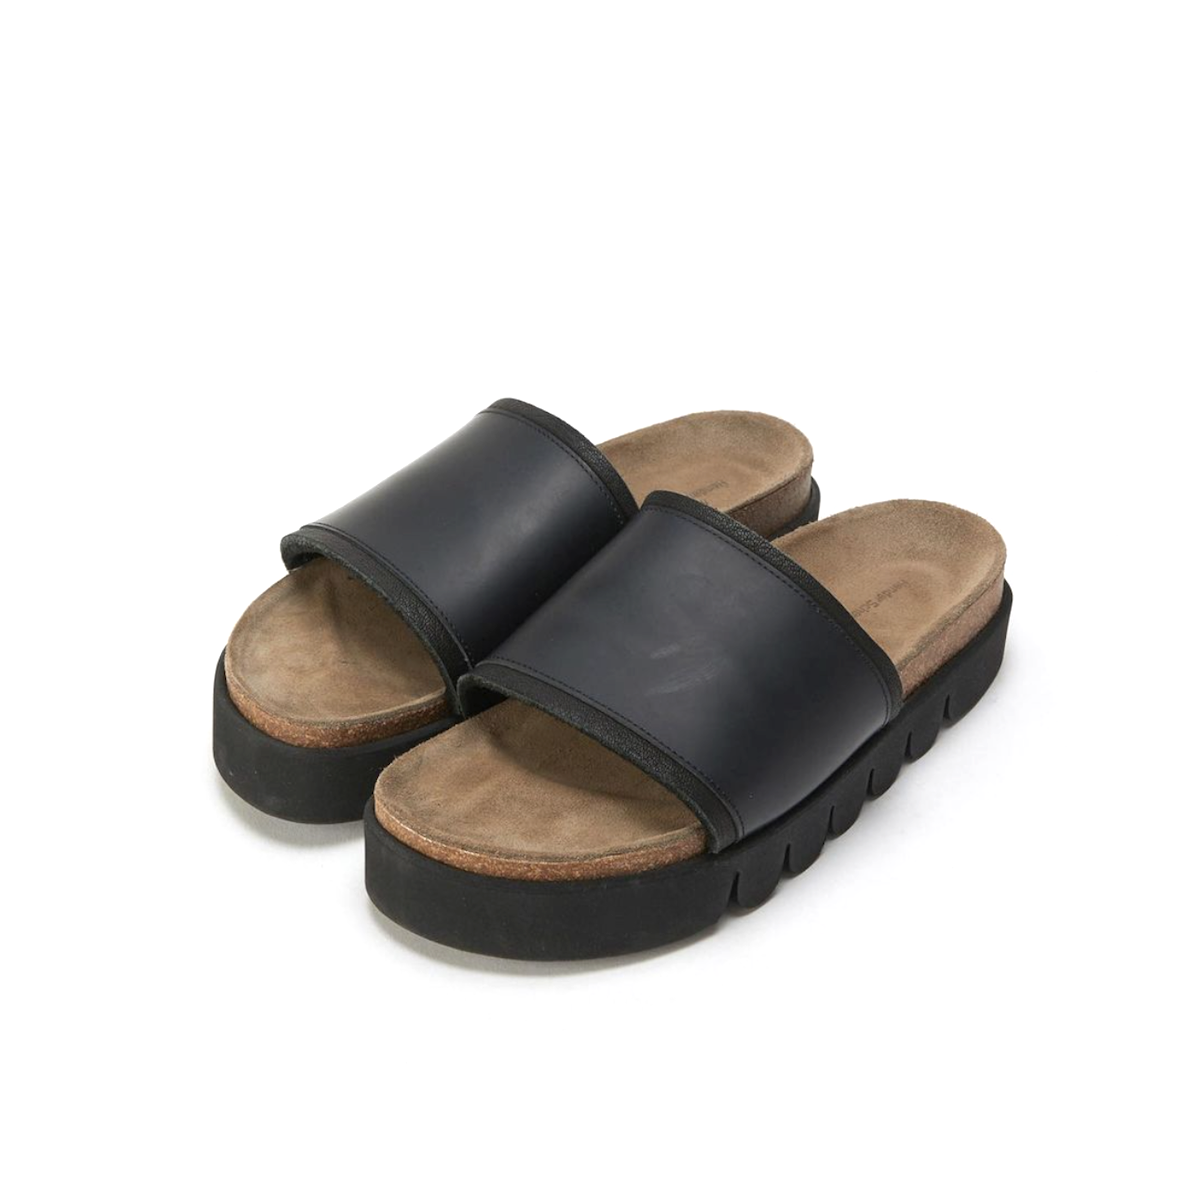 Hender Scheme / Caterpillar (Black)